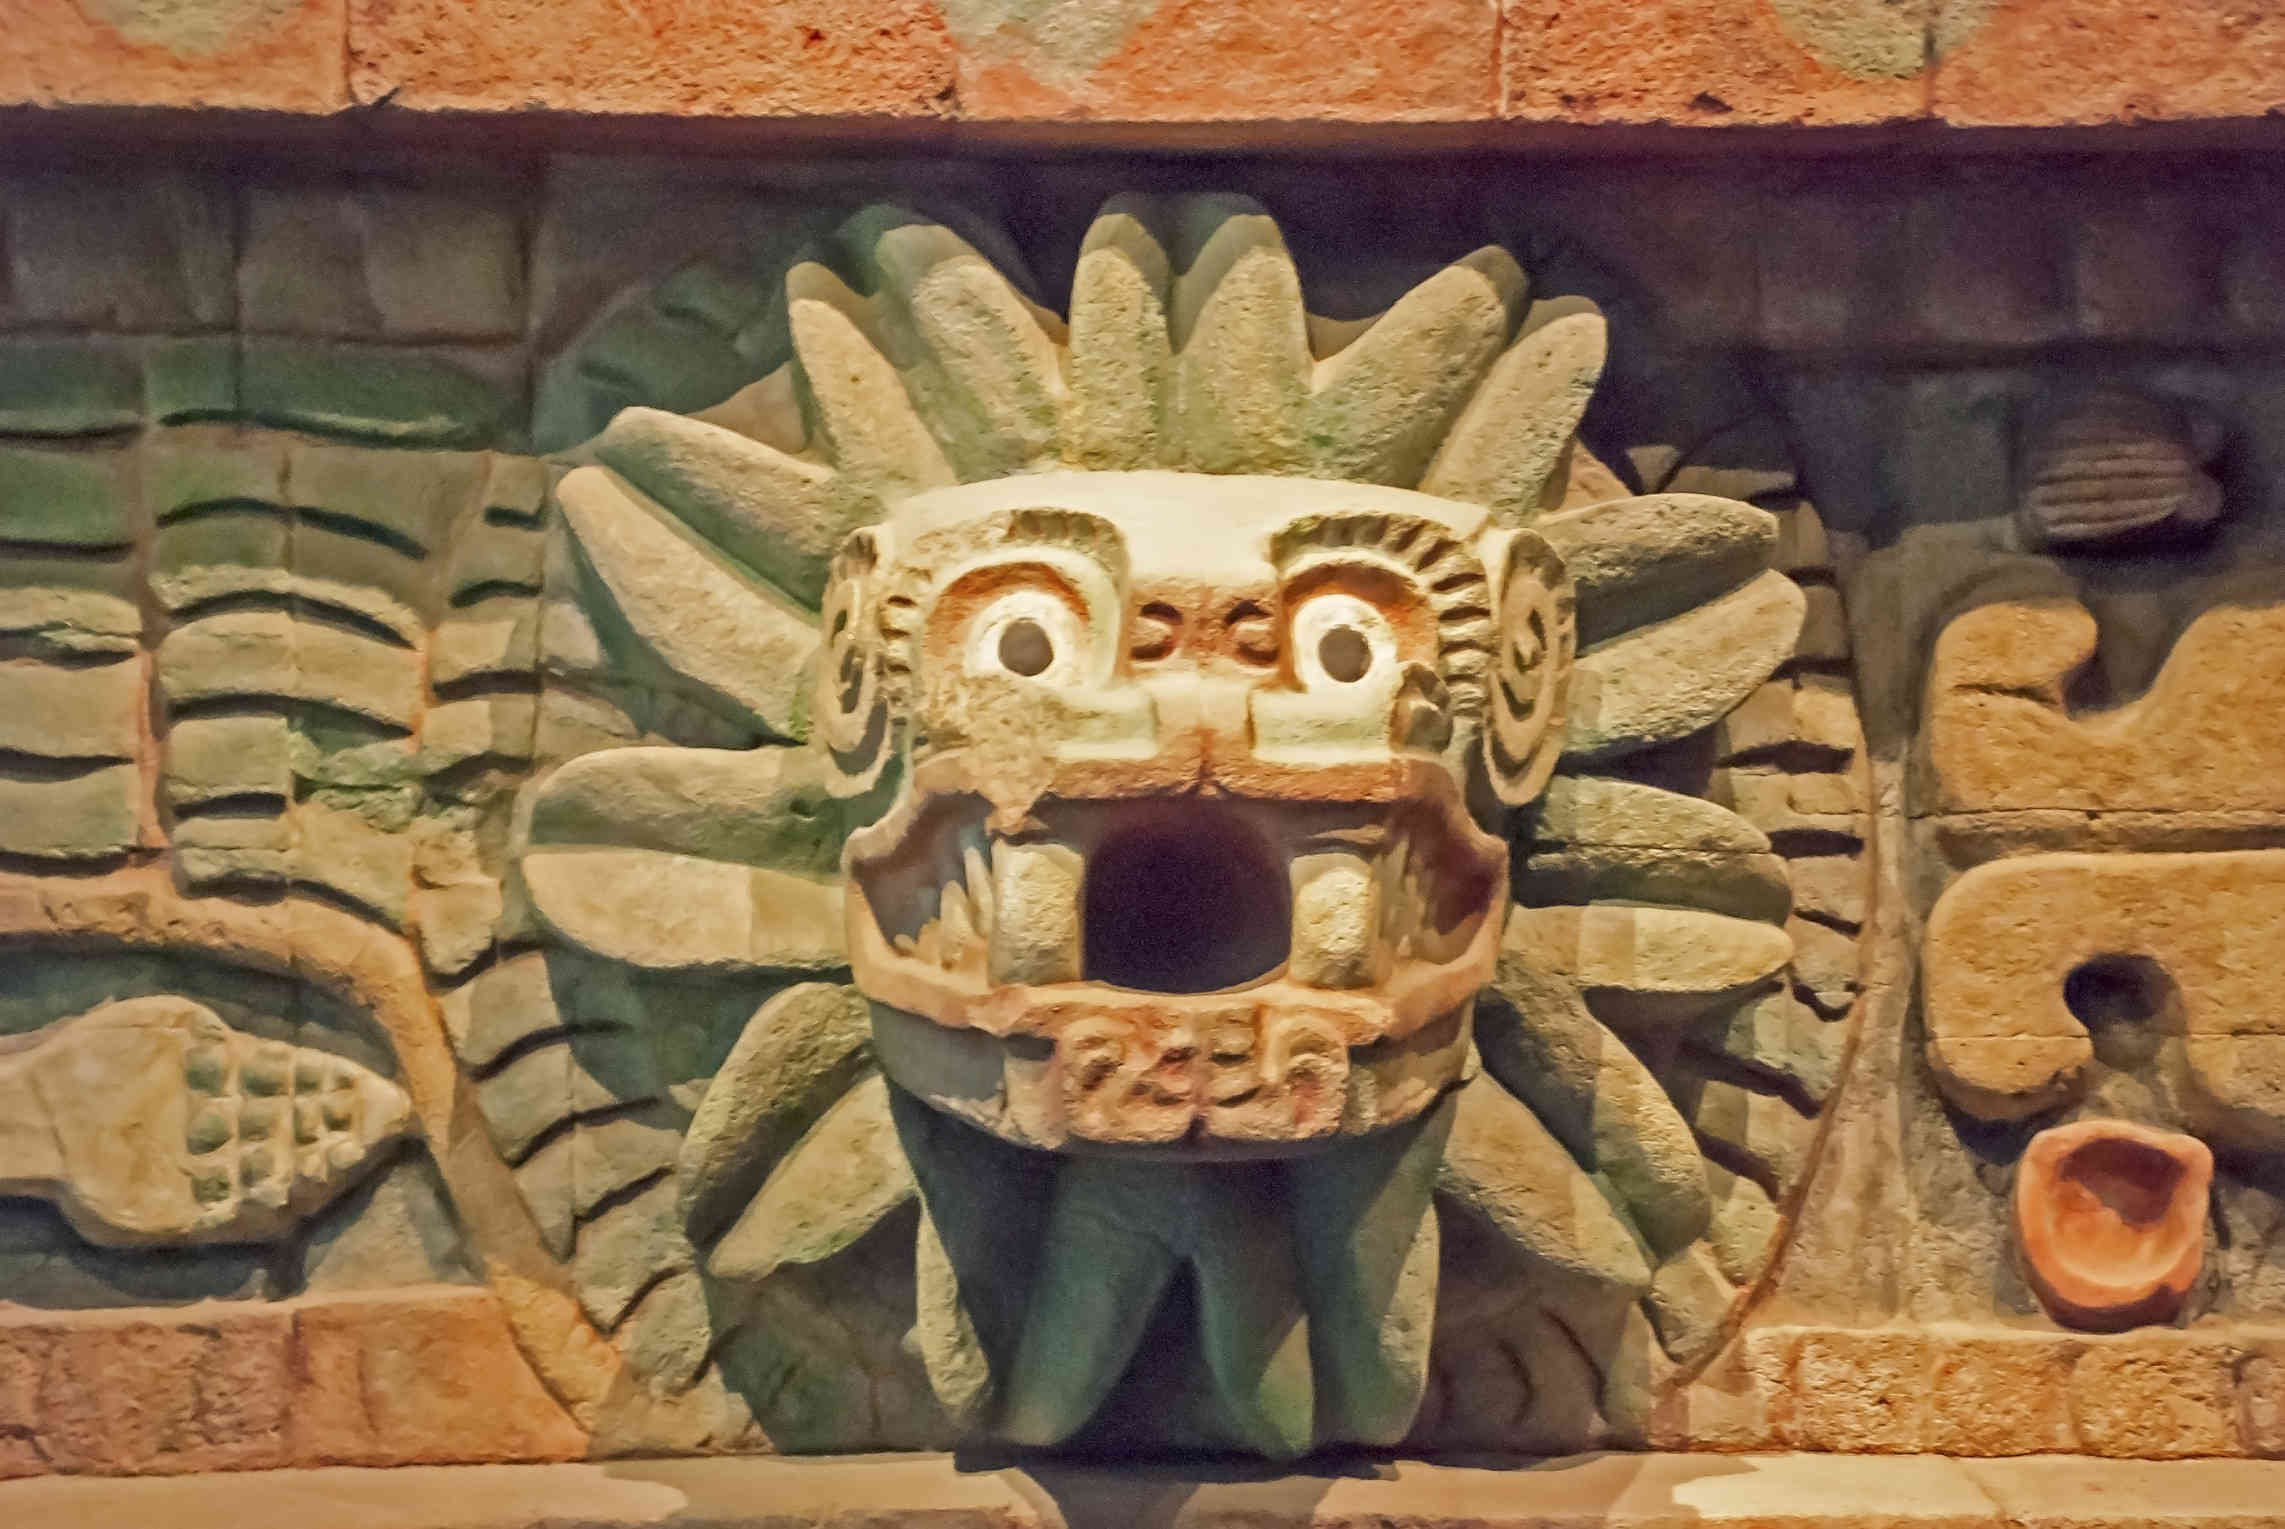 Pre-Columbian Sculpture, Museum of Anthropology